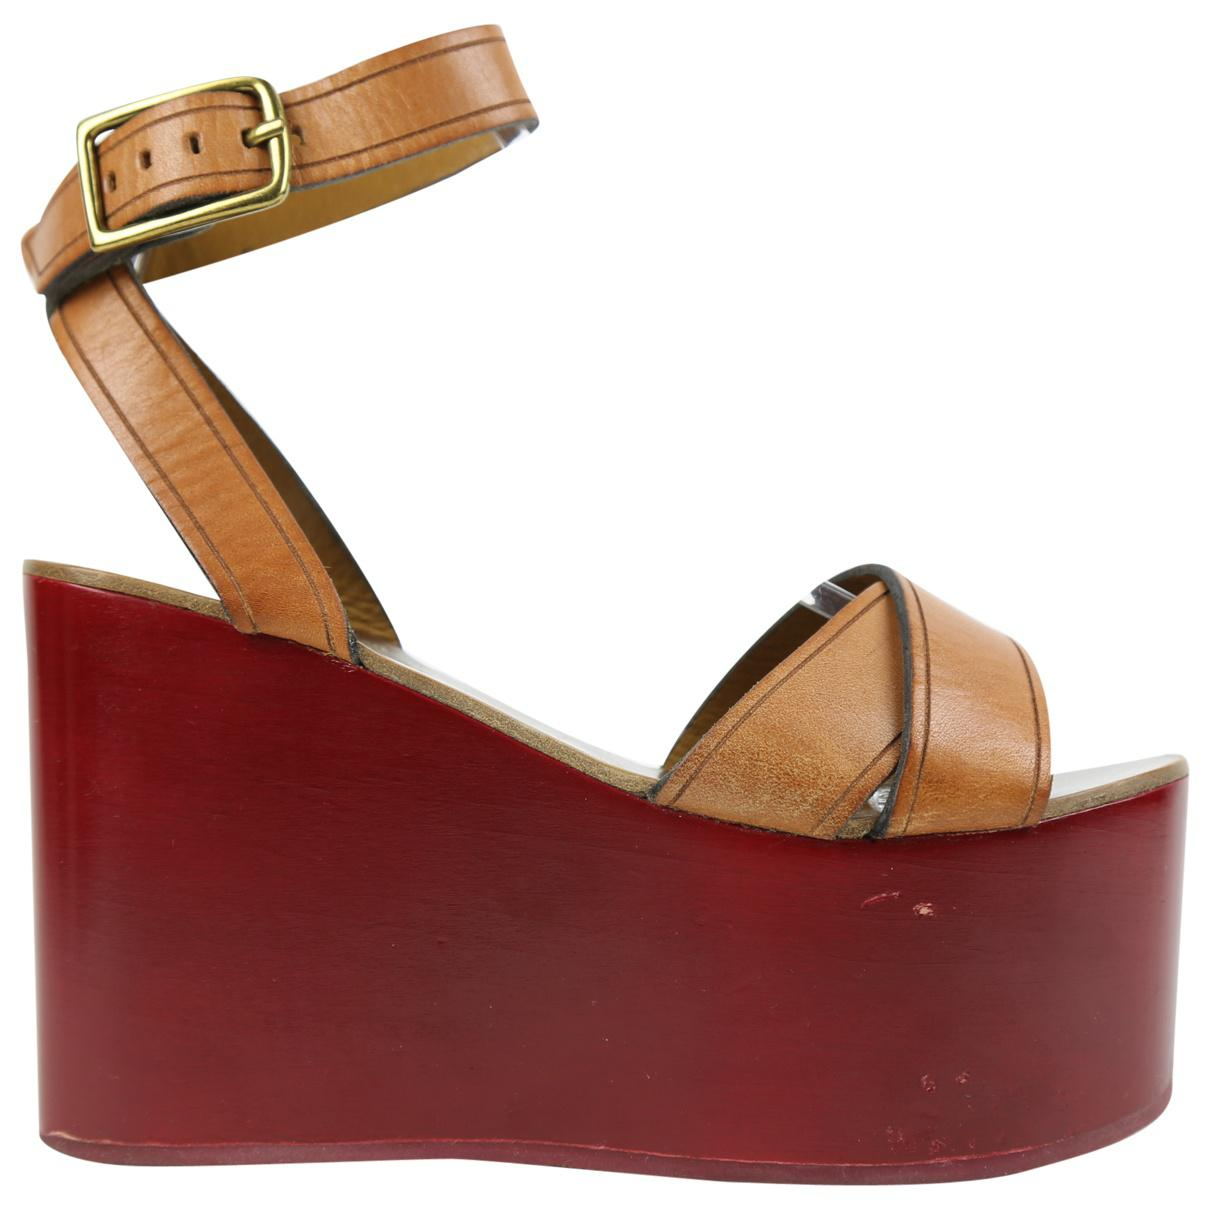 Pre-owned - Leather sandal Isabel Marant gKswQACL